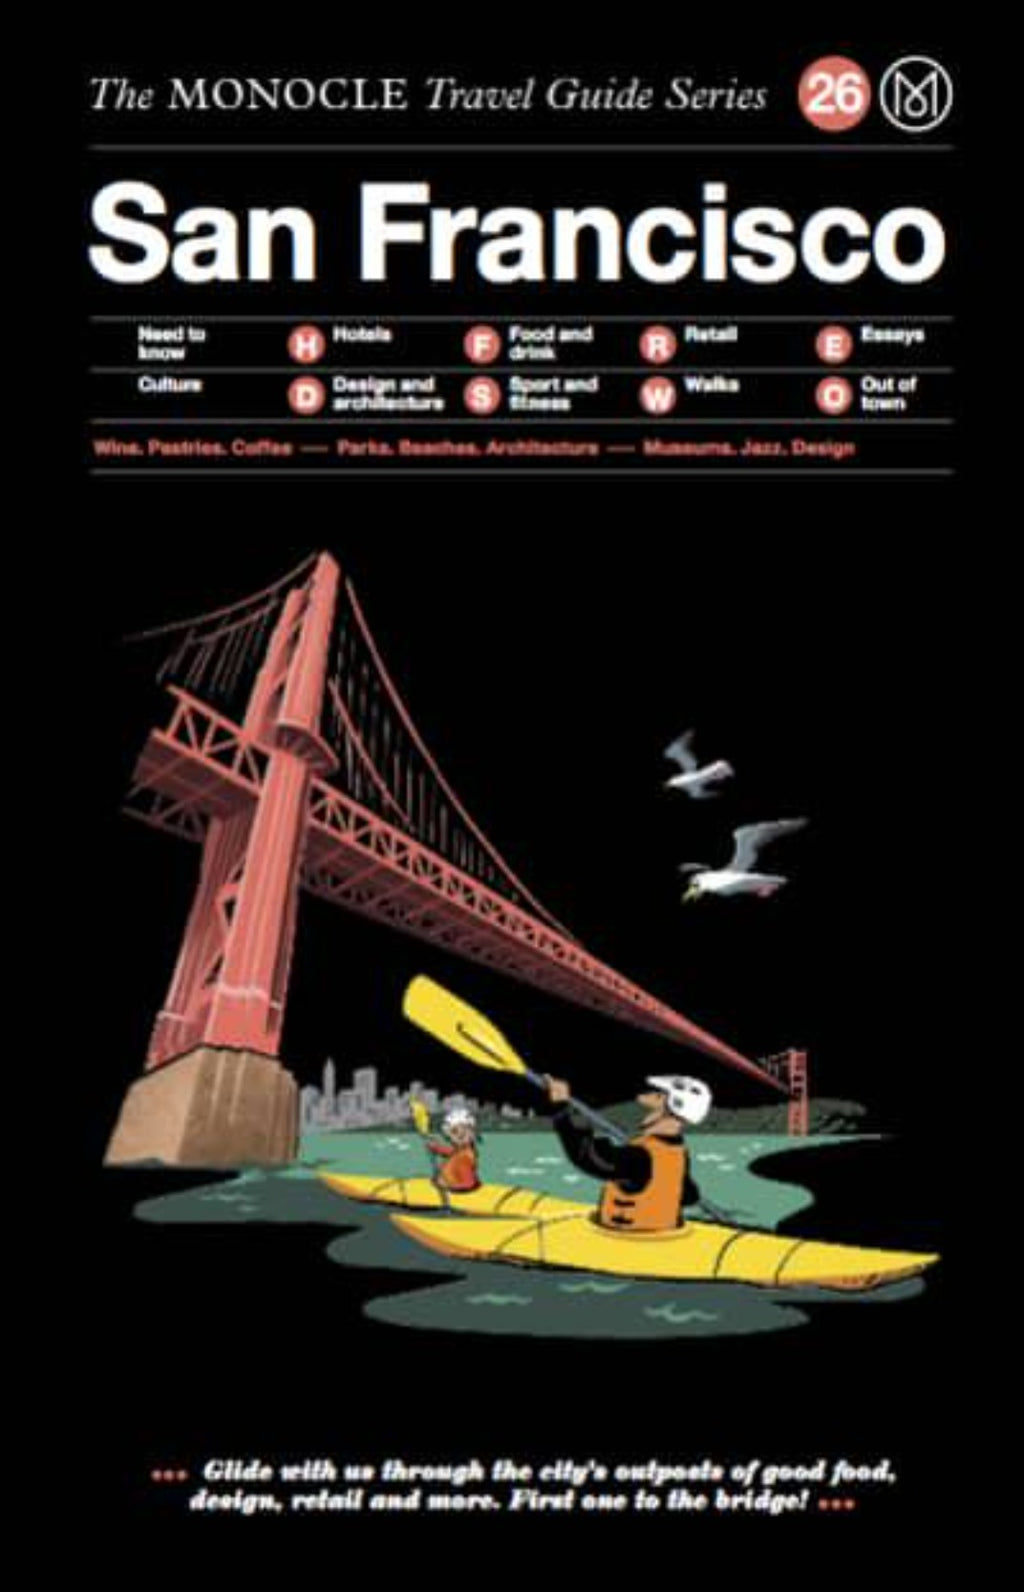 San Francisco - The Monocle Travel Guide Series 26